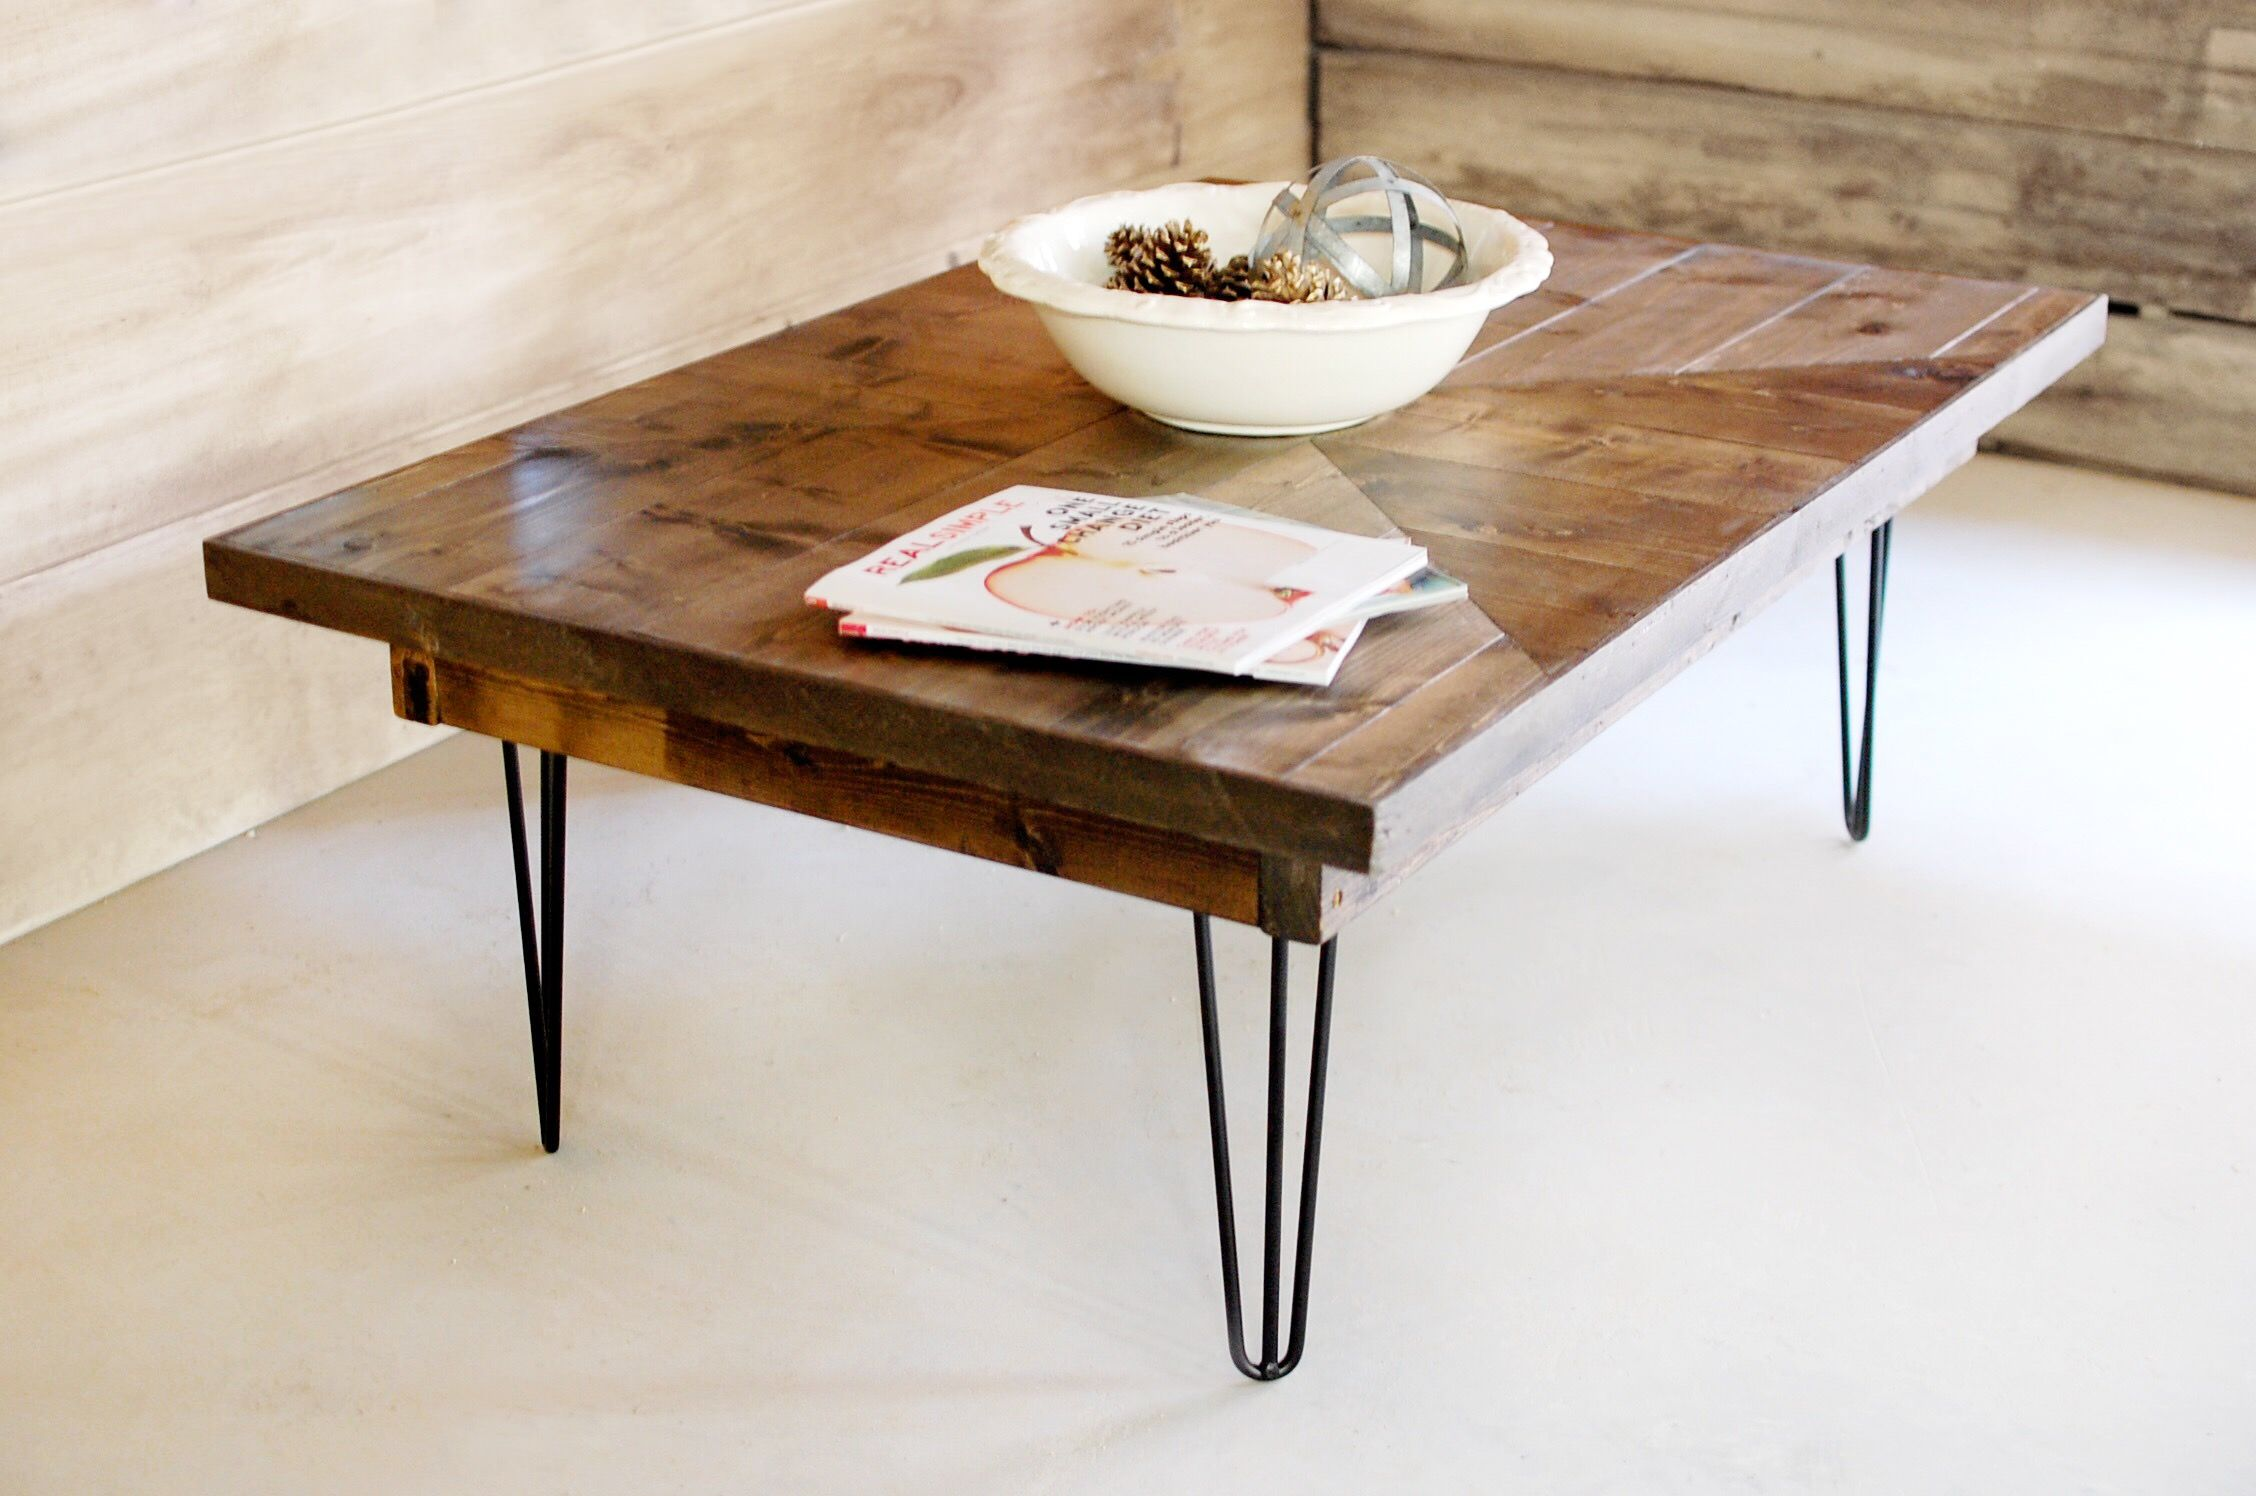 Hand Made Industrial Mid Century Modern Wood Coffee Table By Southern Sunshine Custommade Com